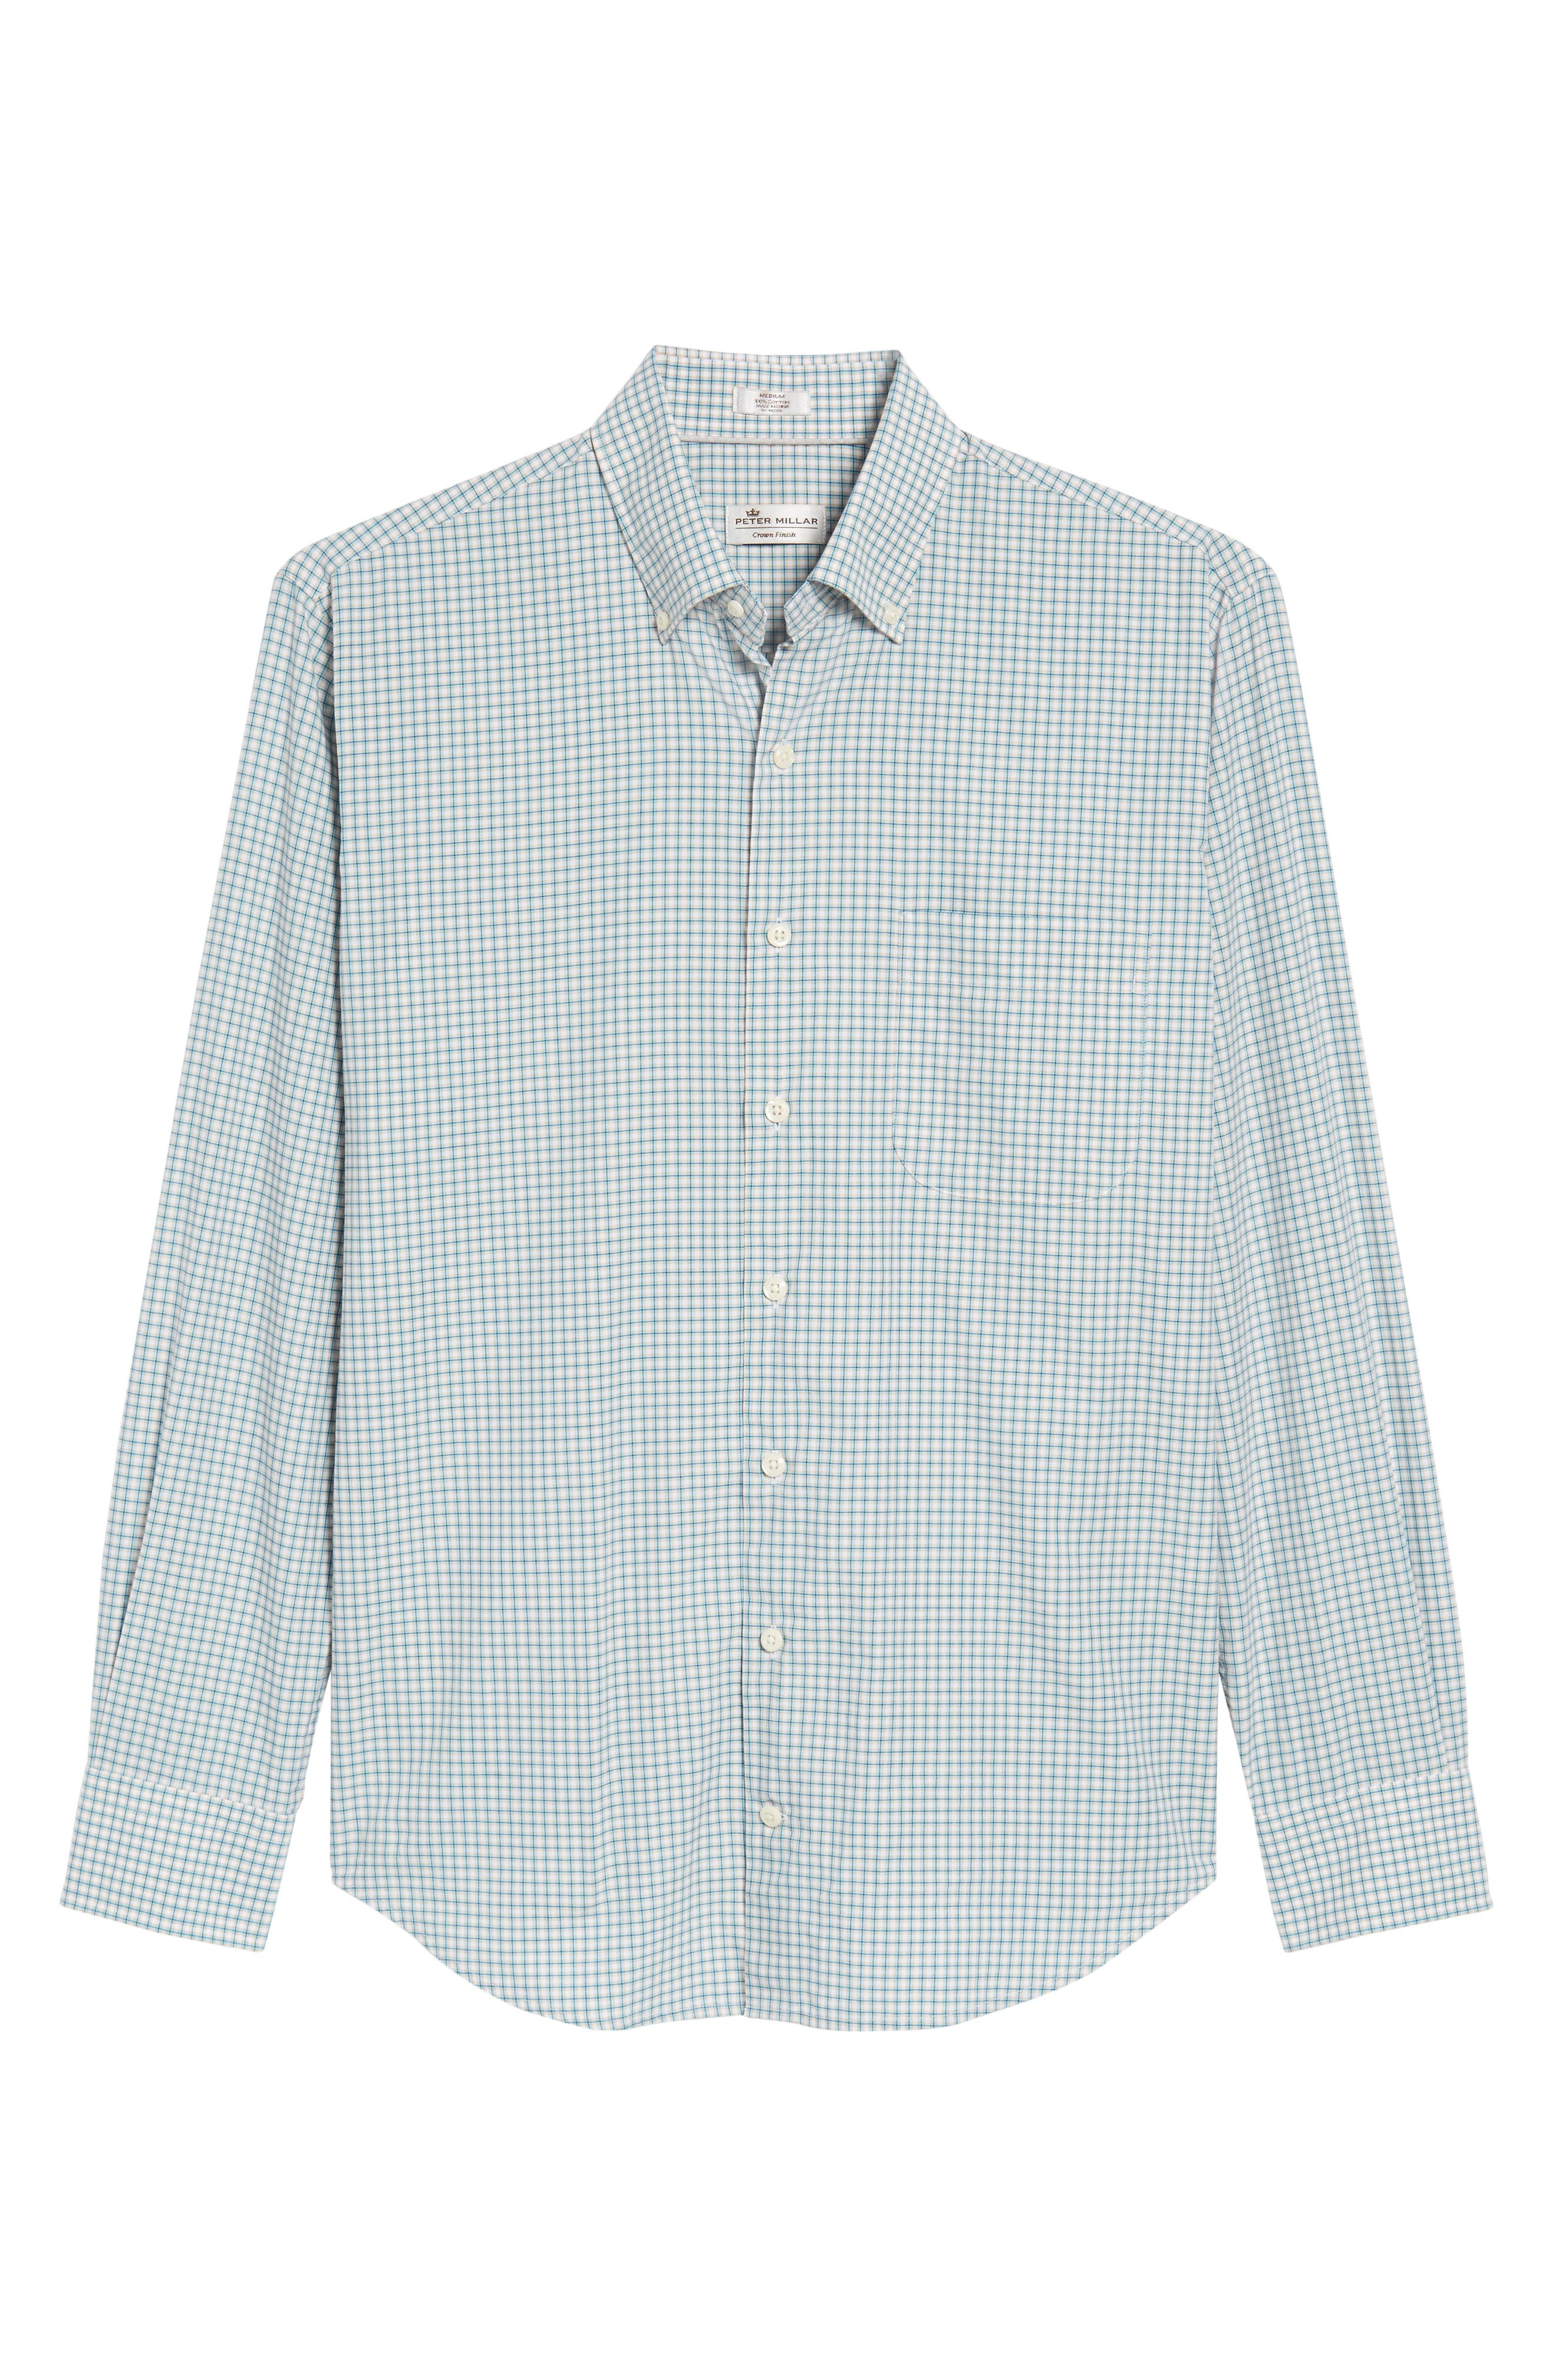 Classic Fit Alligator Check Sport Shirt,                             Alternate thumbnail 6, color,                             Dreamsicle